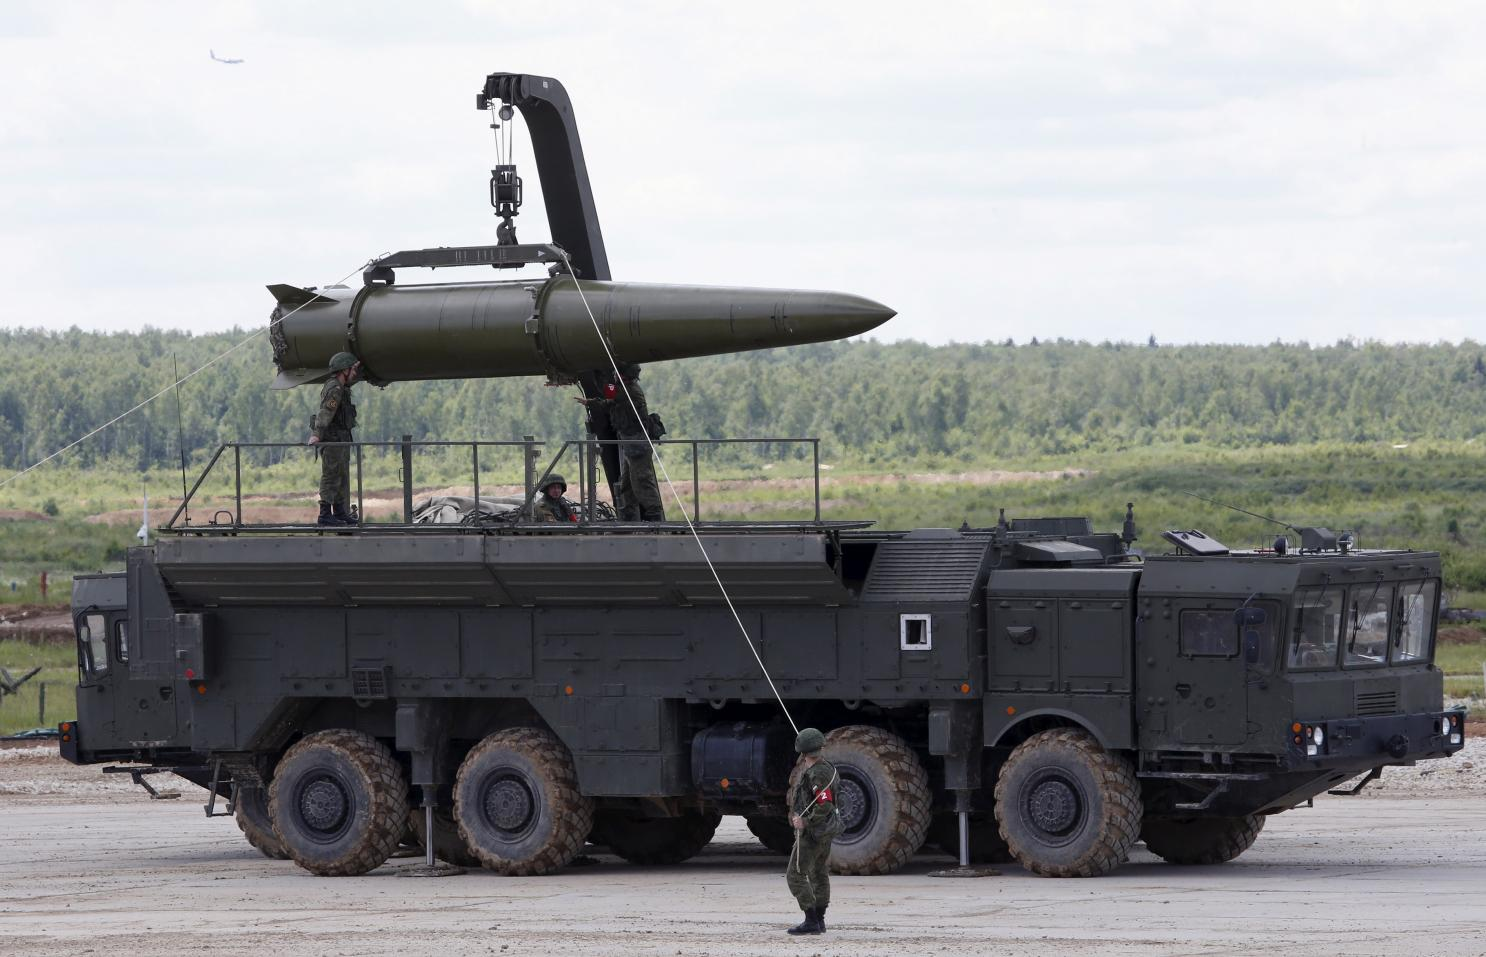 U.S. intelligence agencies found that Russia's Novator 9M729 is a cruise missile with a range that exceeds 500 km, effectively violating the INF treaty. (Image: nationalinterest.org)